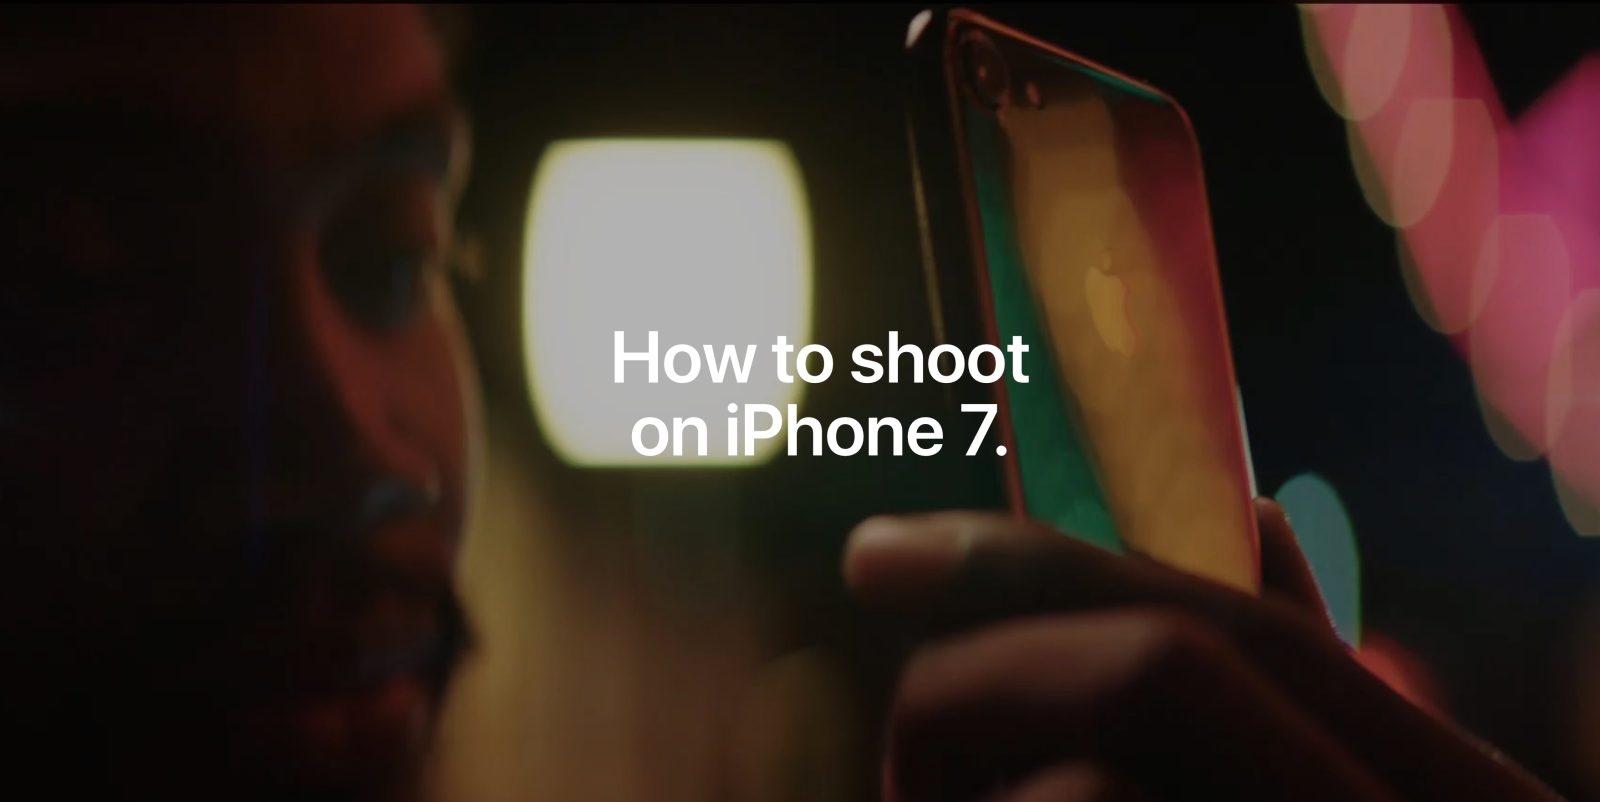 Apple debuts new 'How to shoot on iPhone 7' website & video series